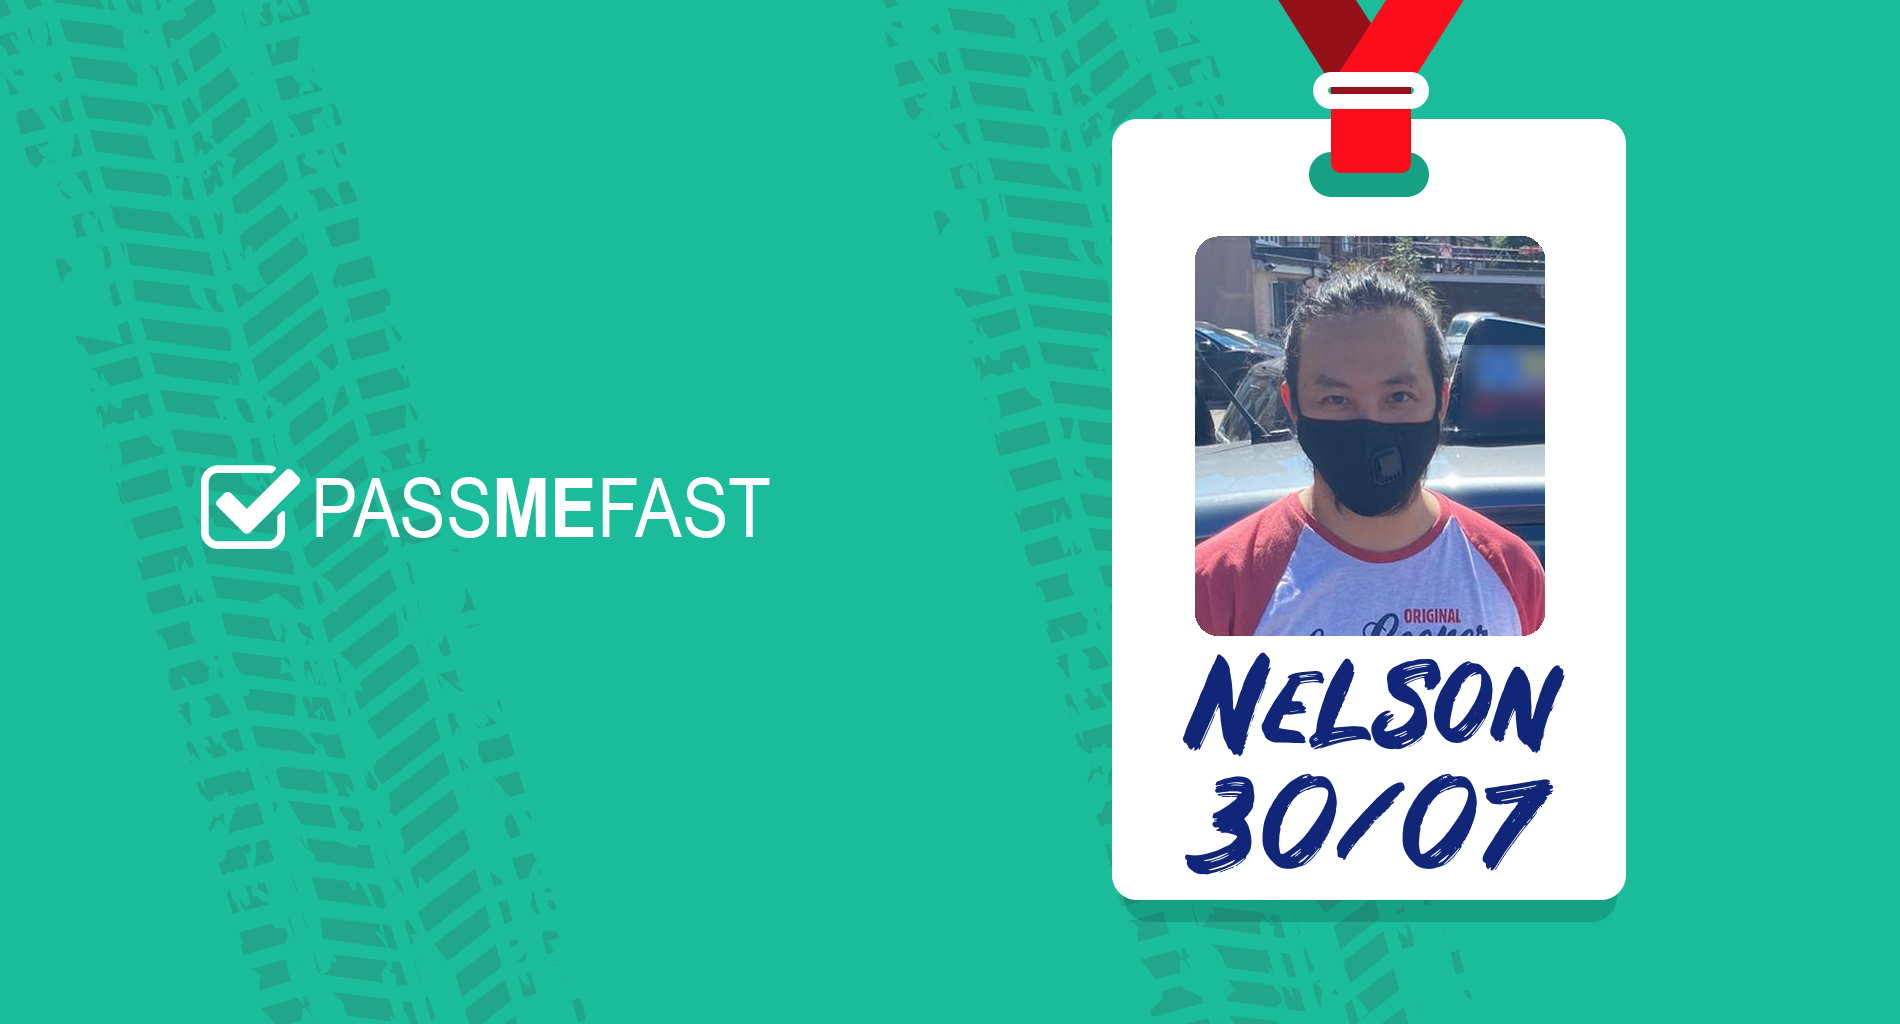 Pass photo of PassMeFast student Nelson in hall of fame frame